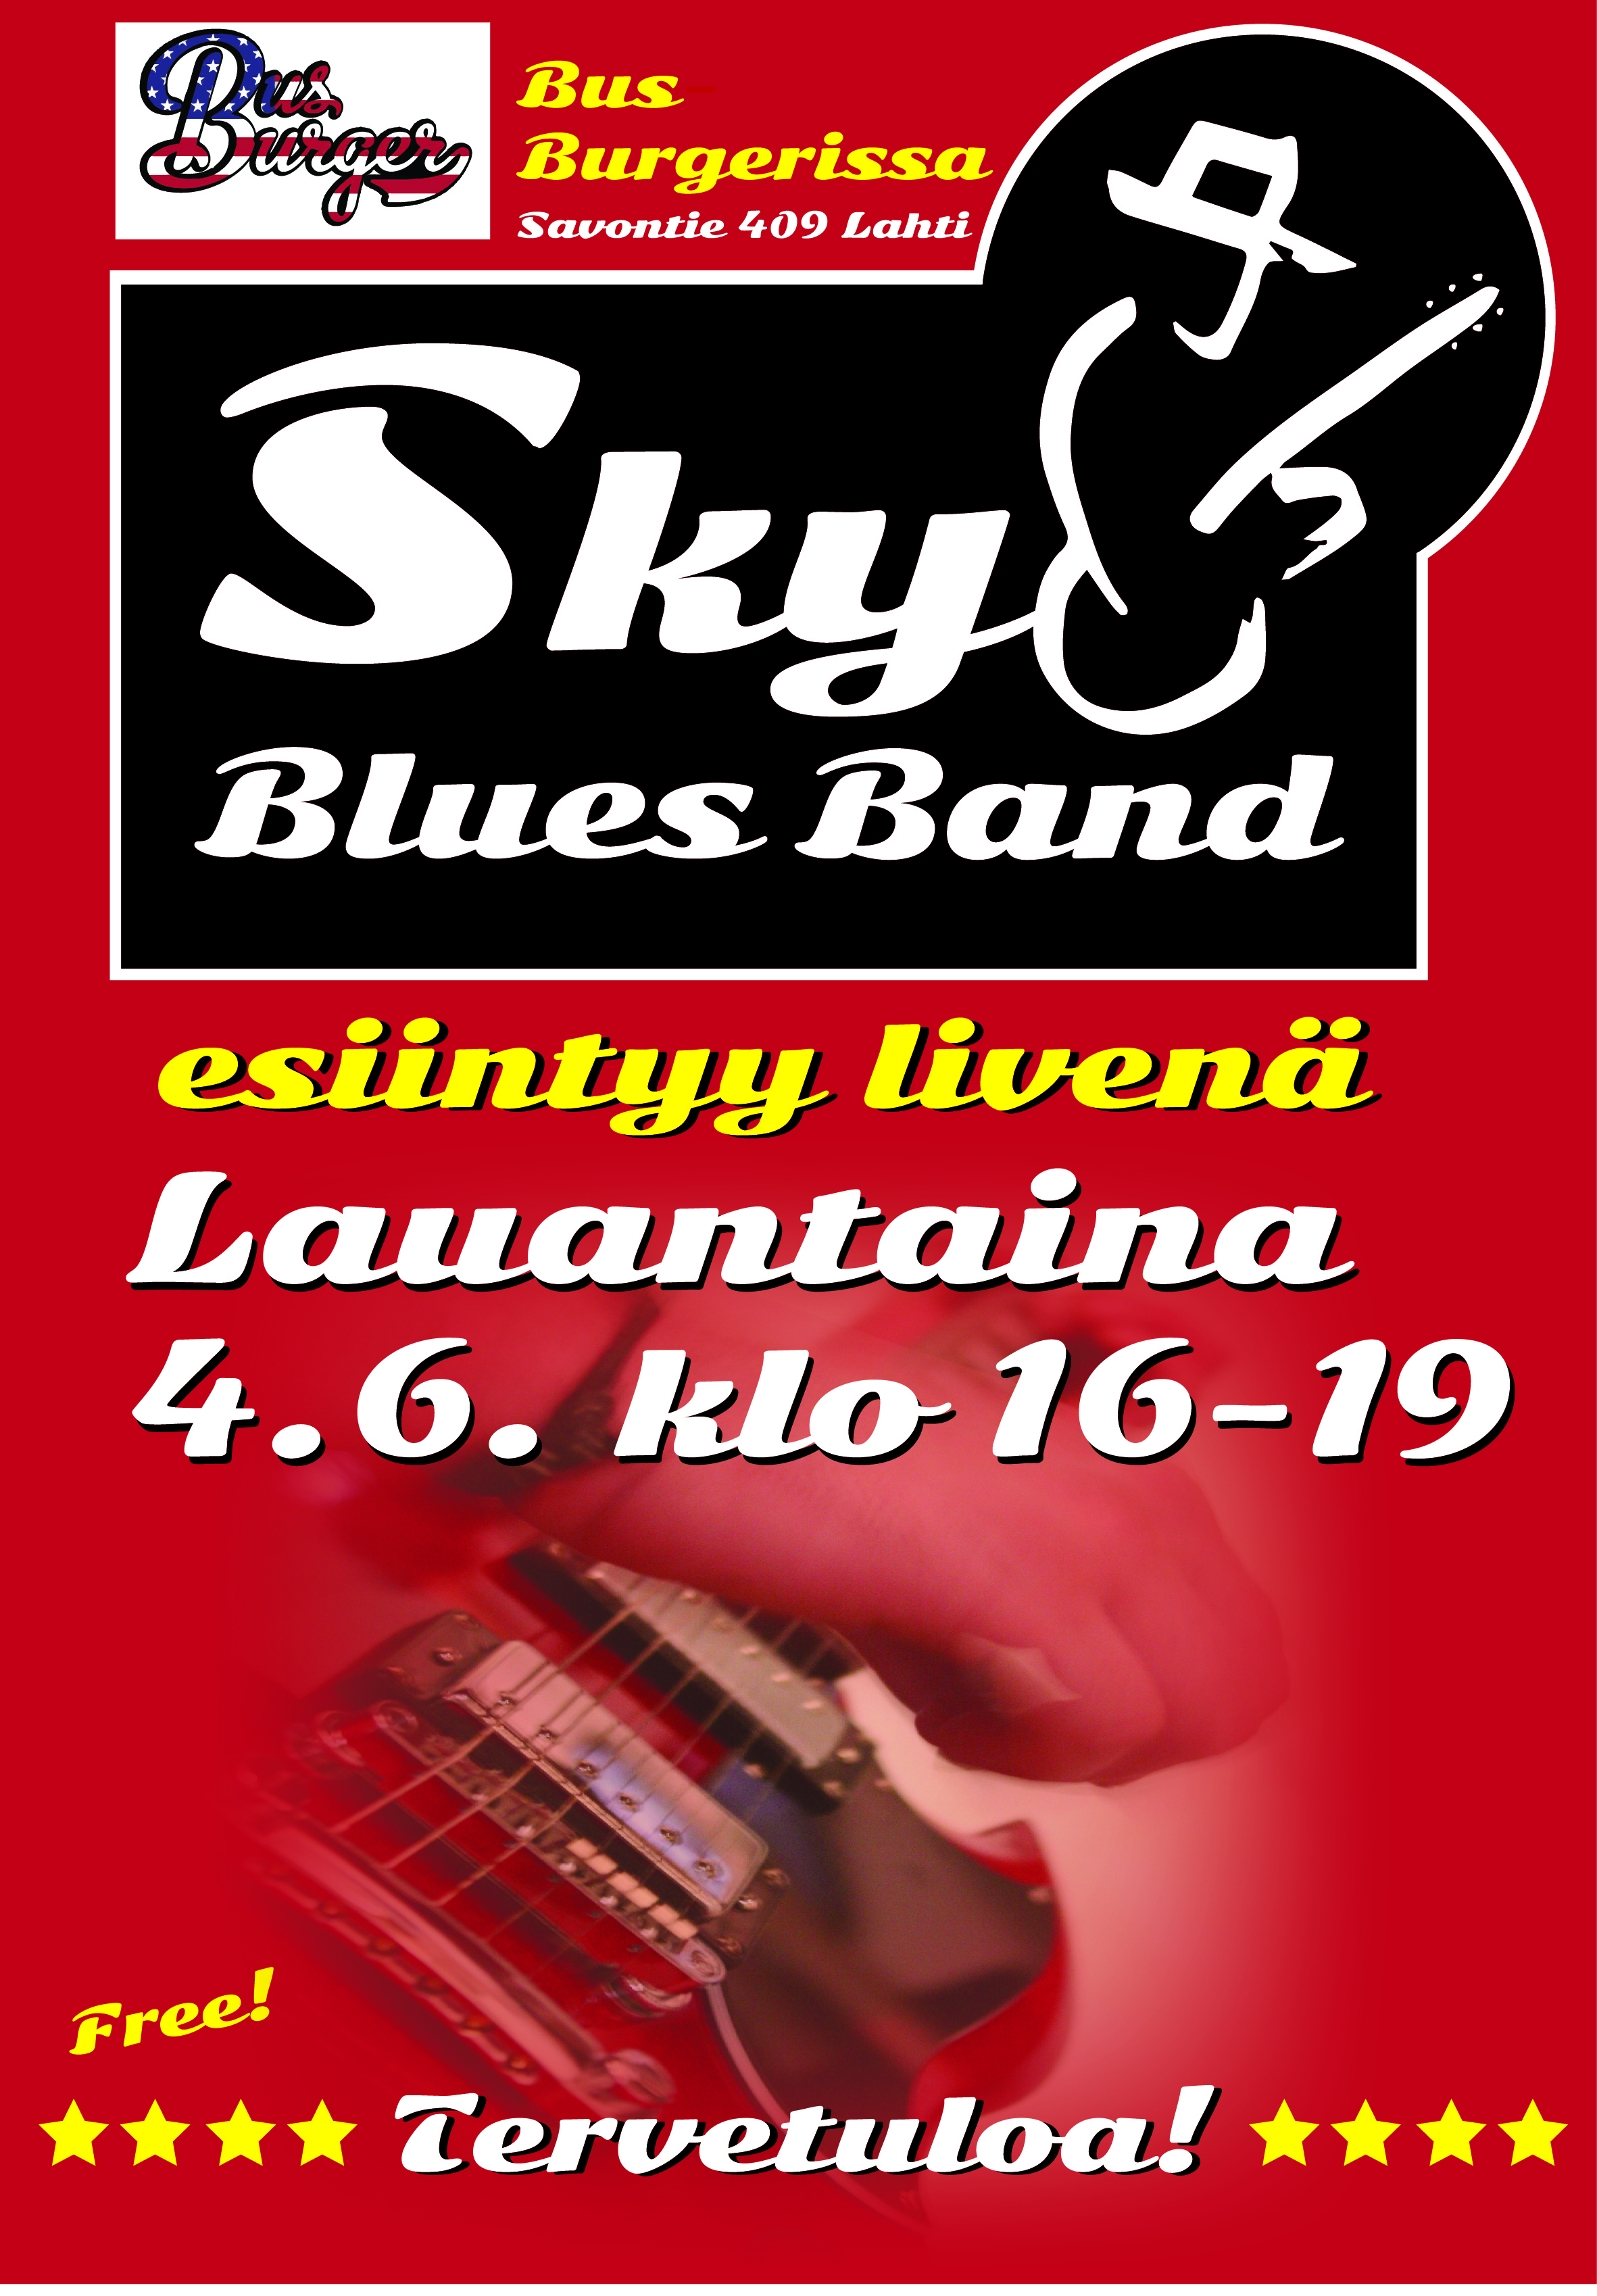 1.SKY_blues_band_A4_BusBurger-juliste2.jpg